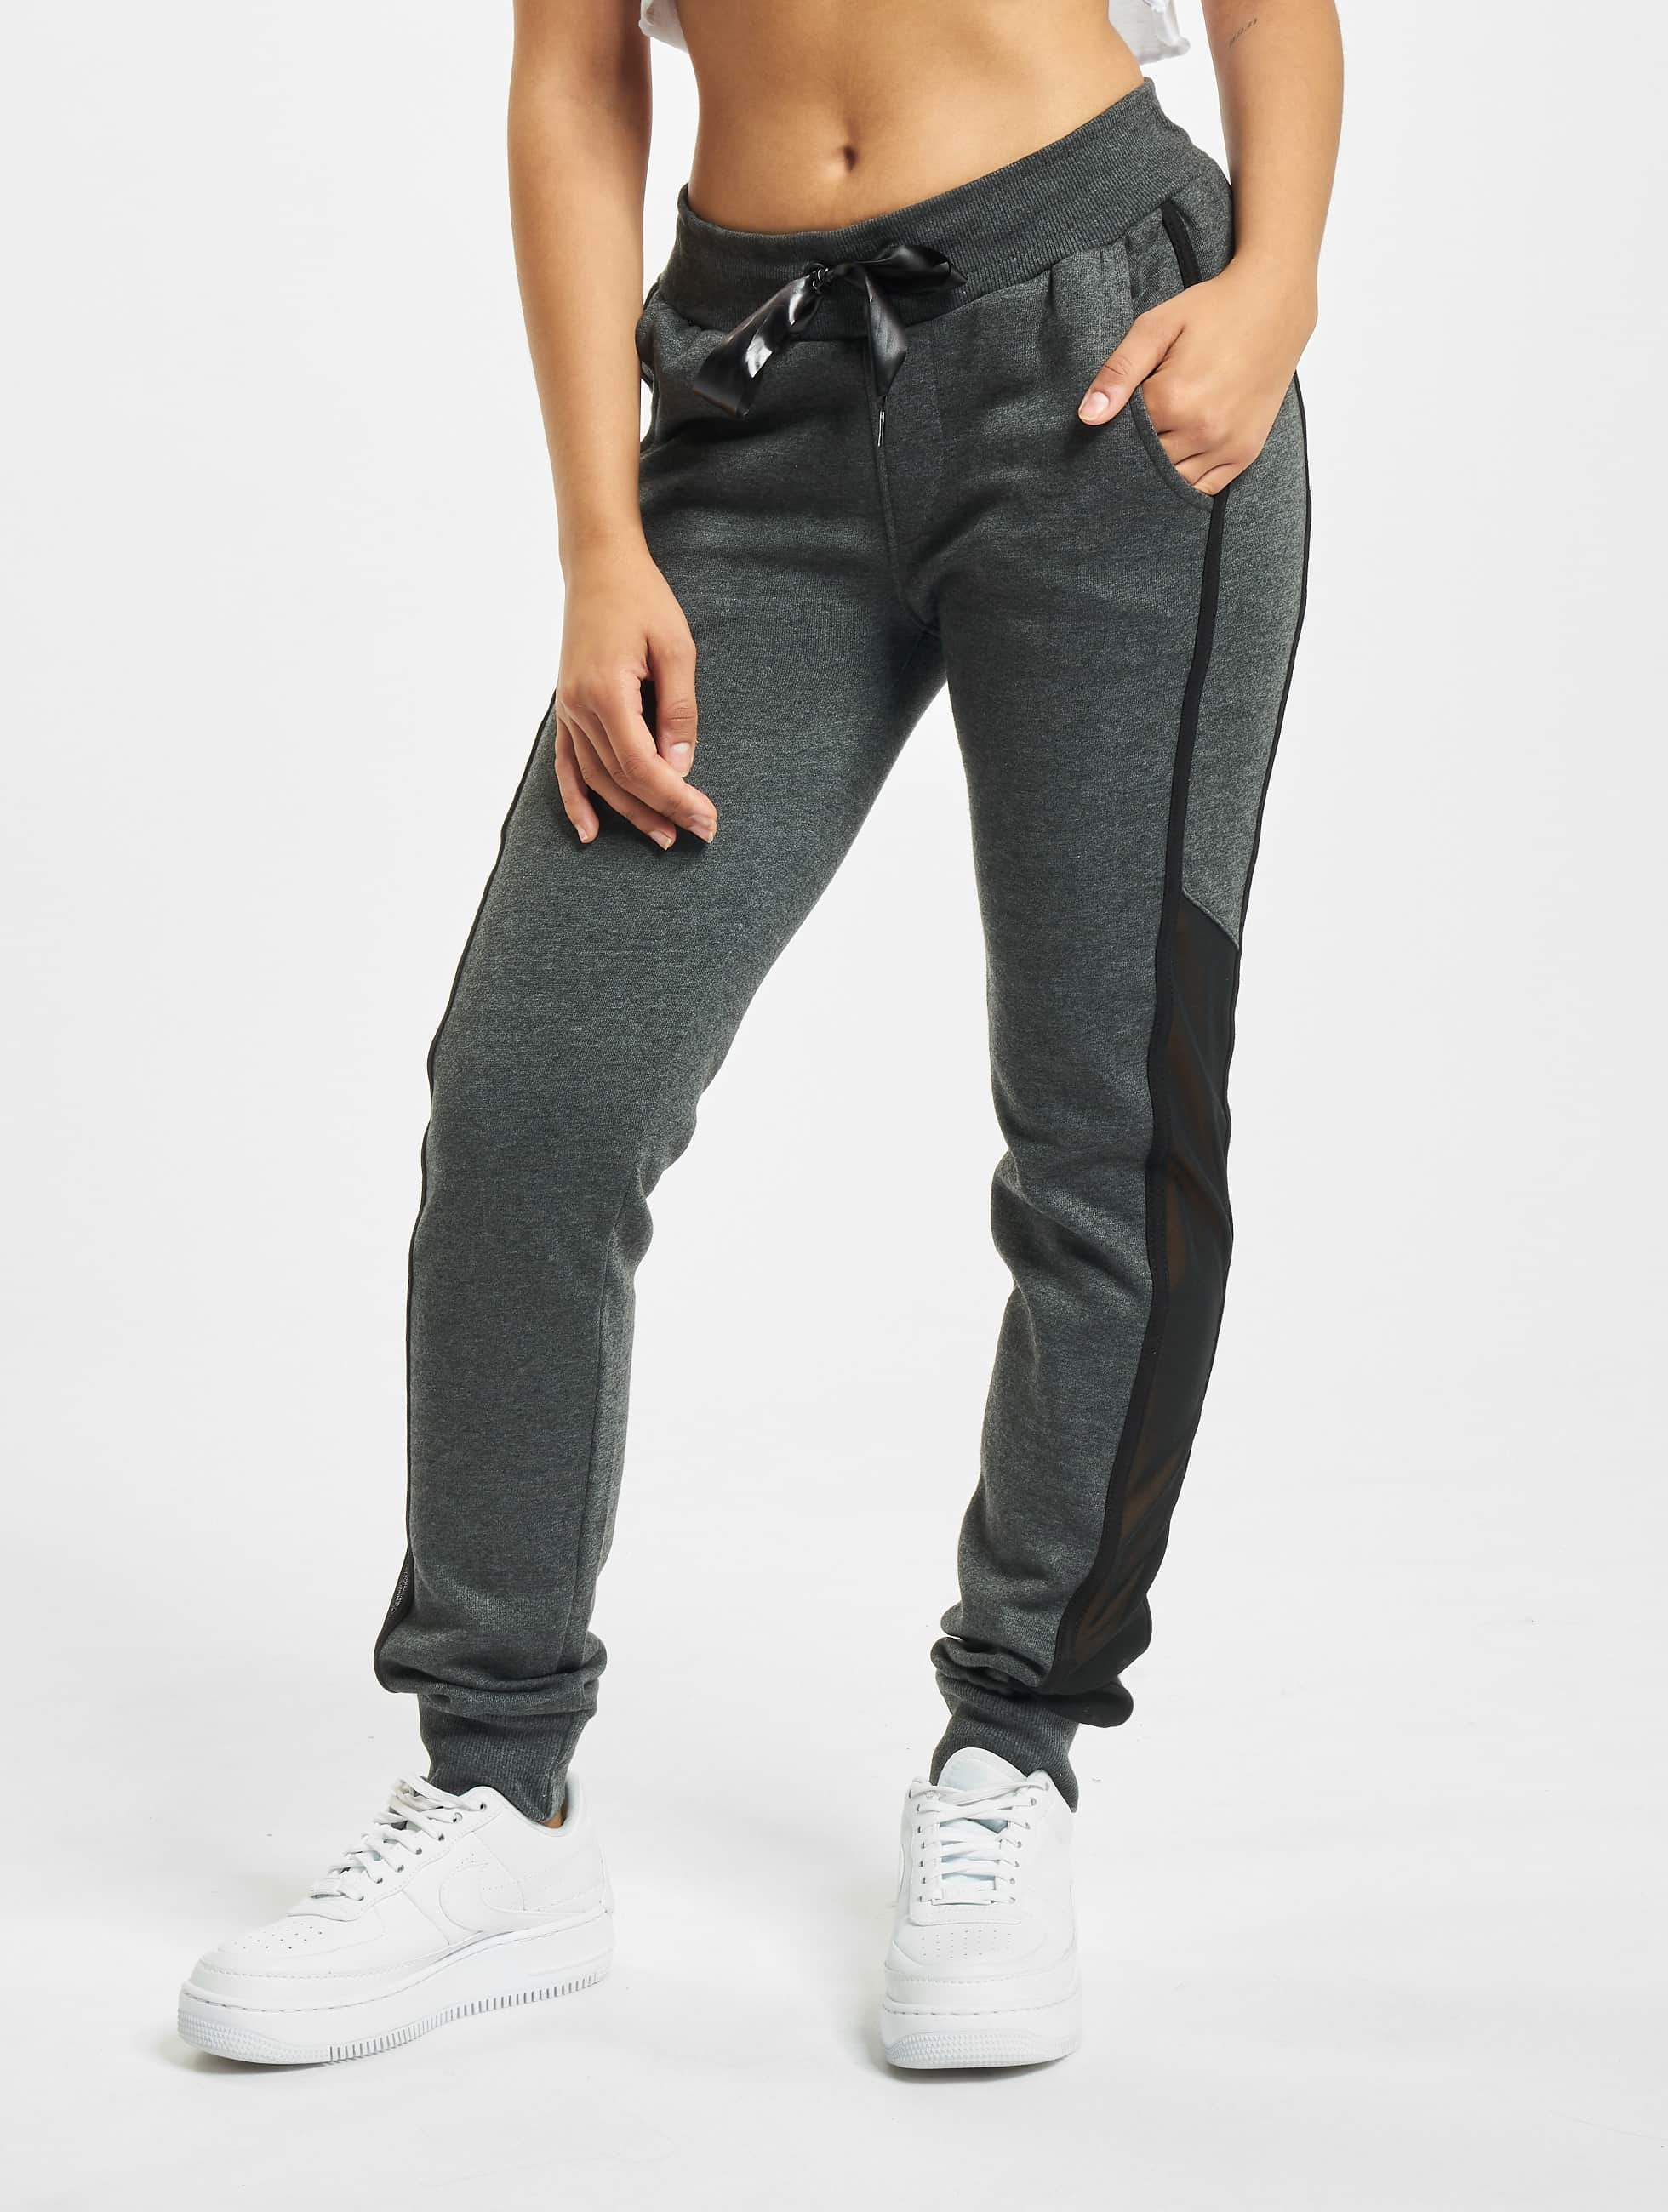 DEF / Sweat Pant Kiki in grey XS